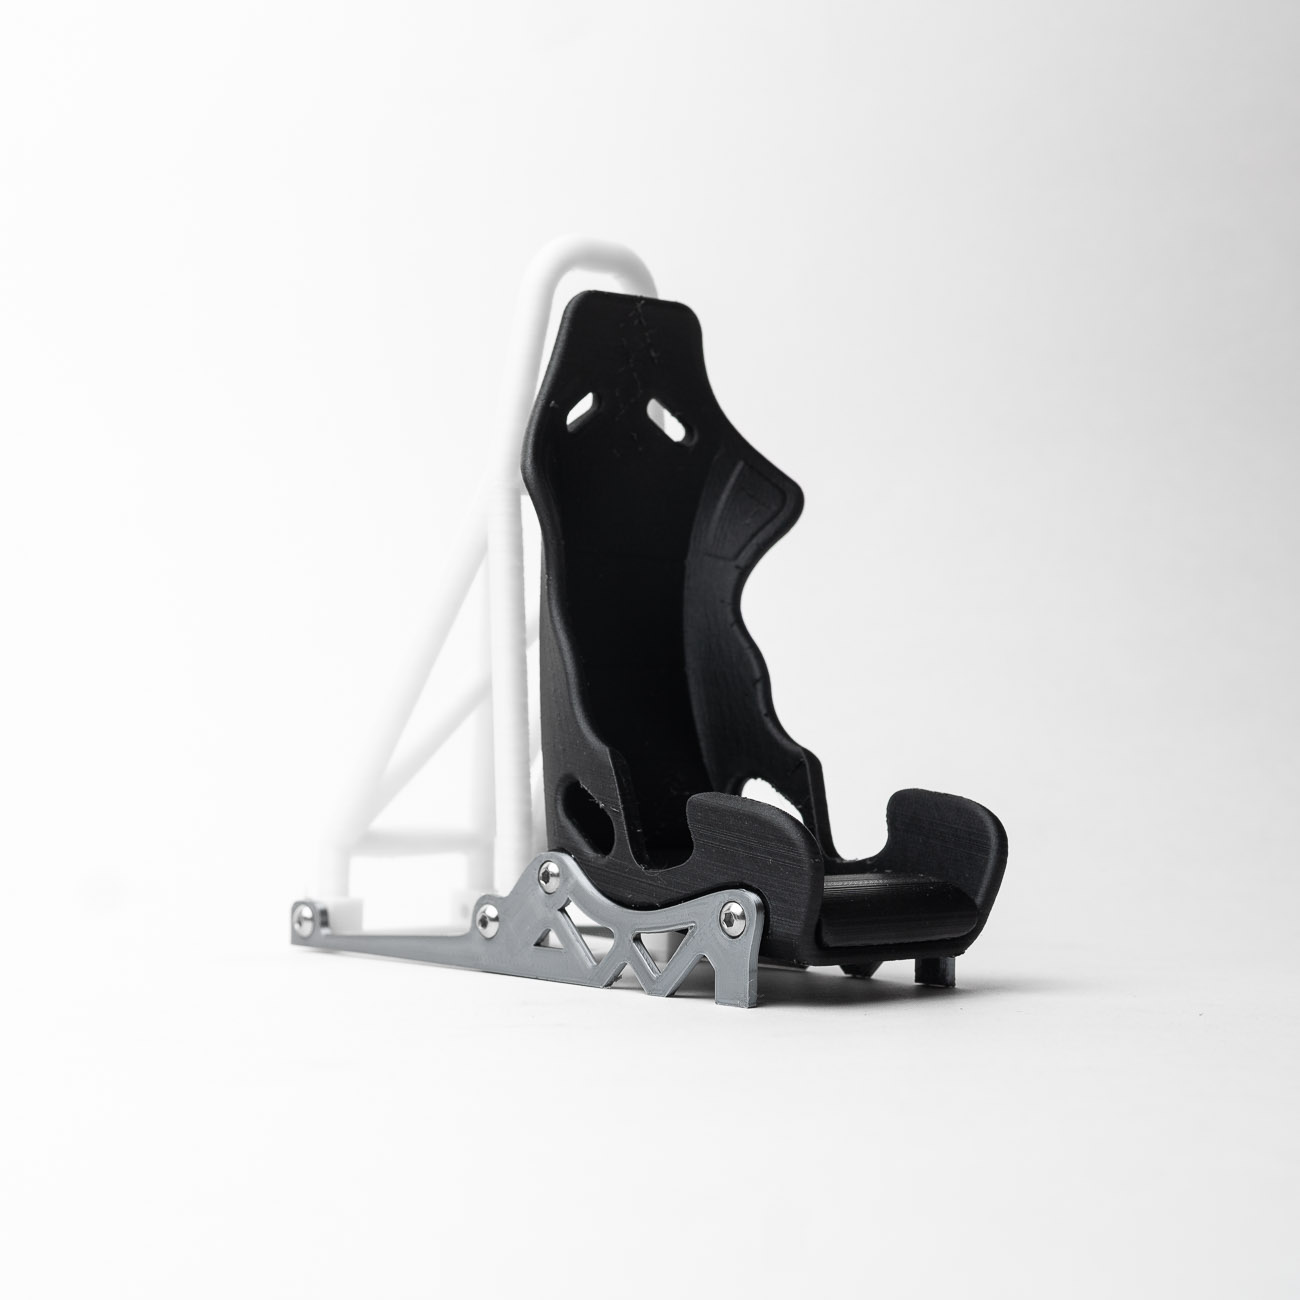 Racing Seat Phone Holder